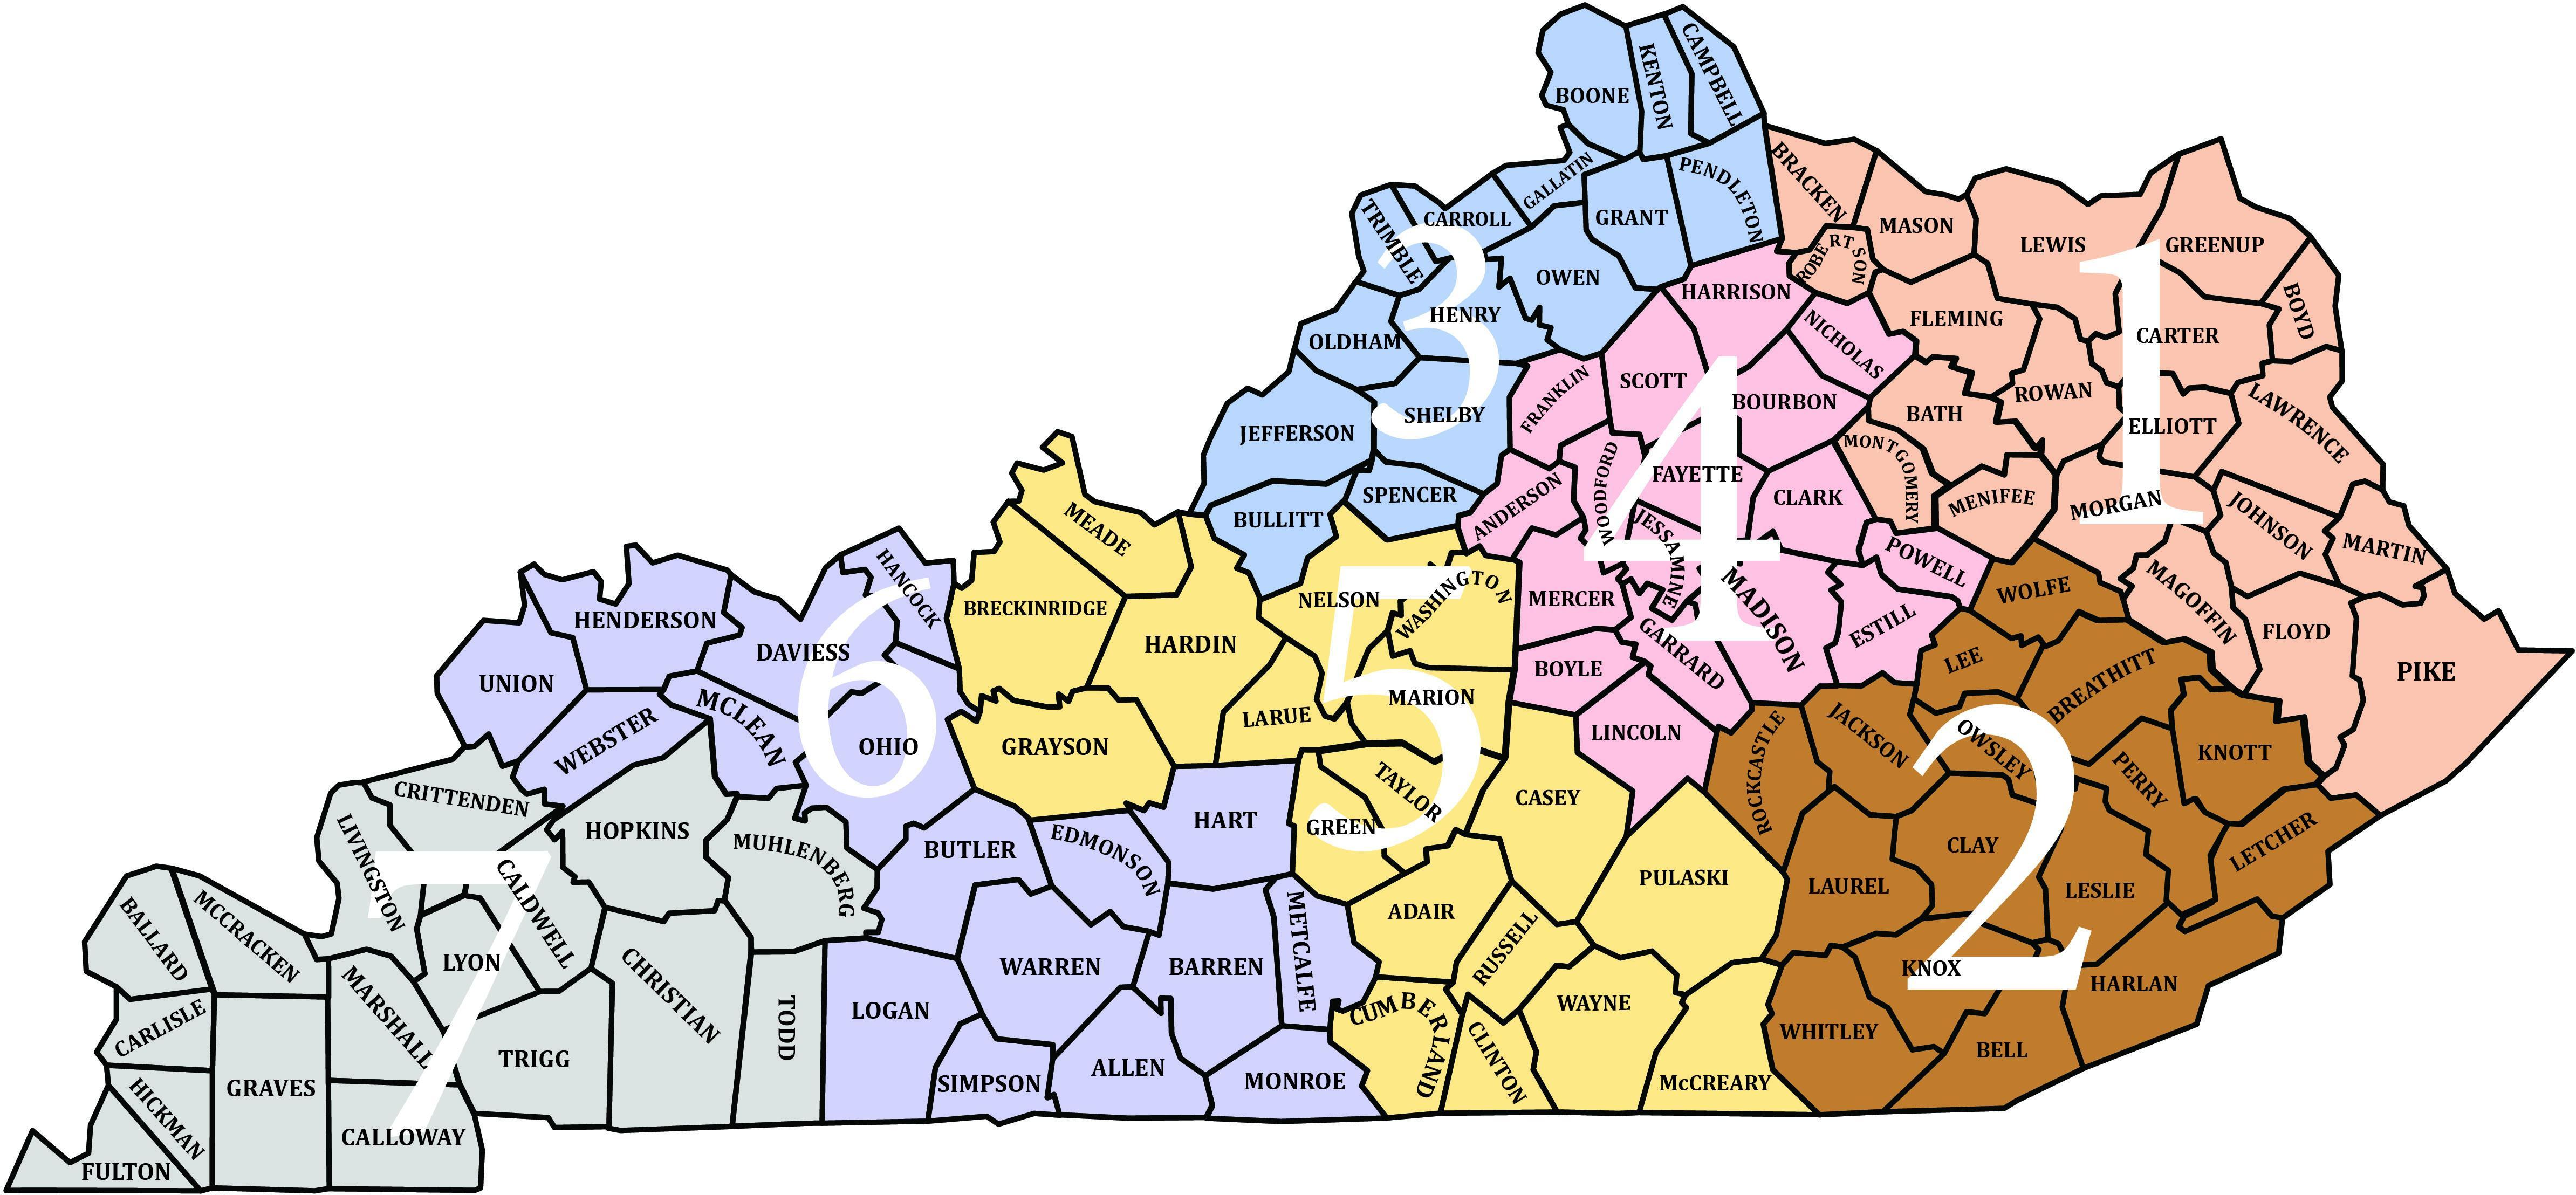 Map Of Counties In Ky | compressportnederland